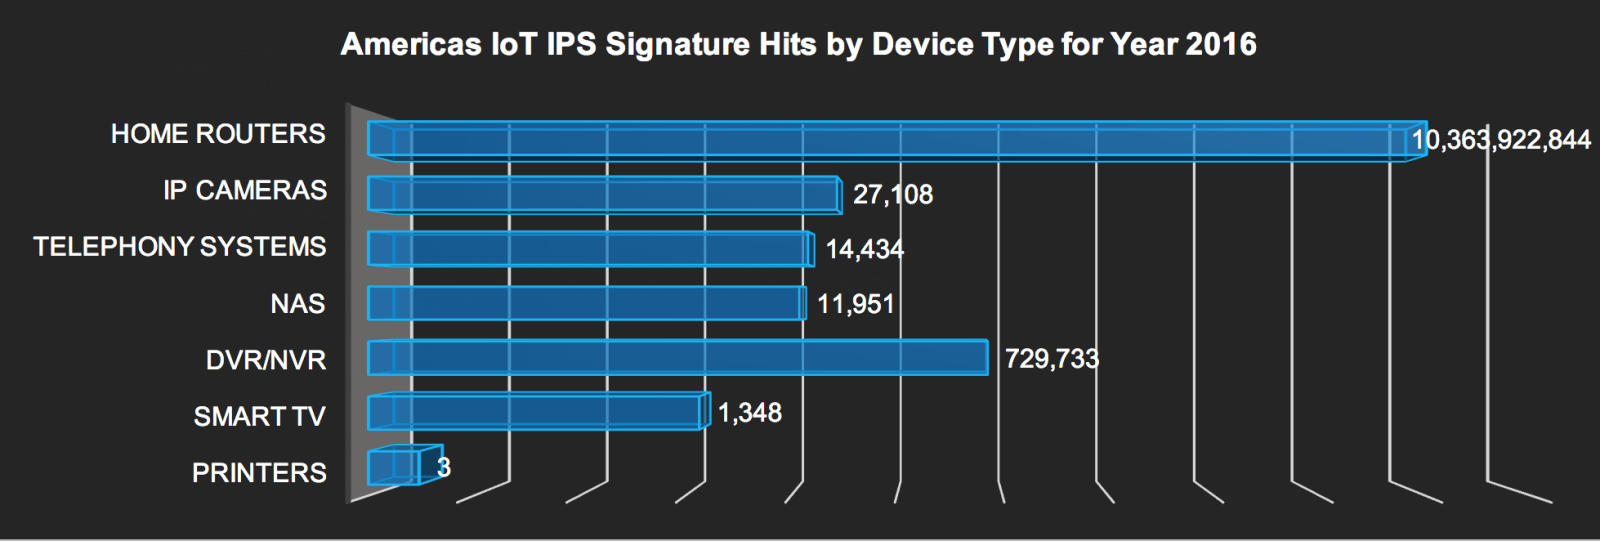 IoT IPS signature hits in Americas by device - 2016